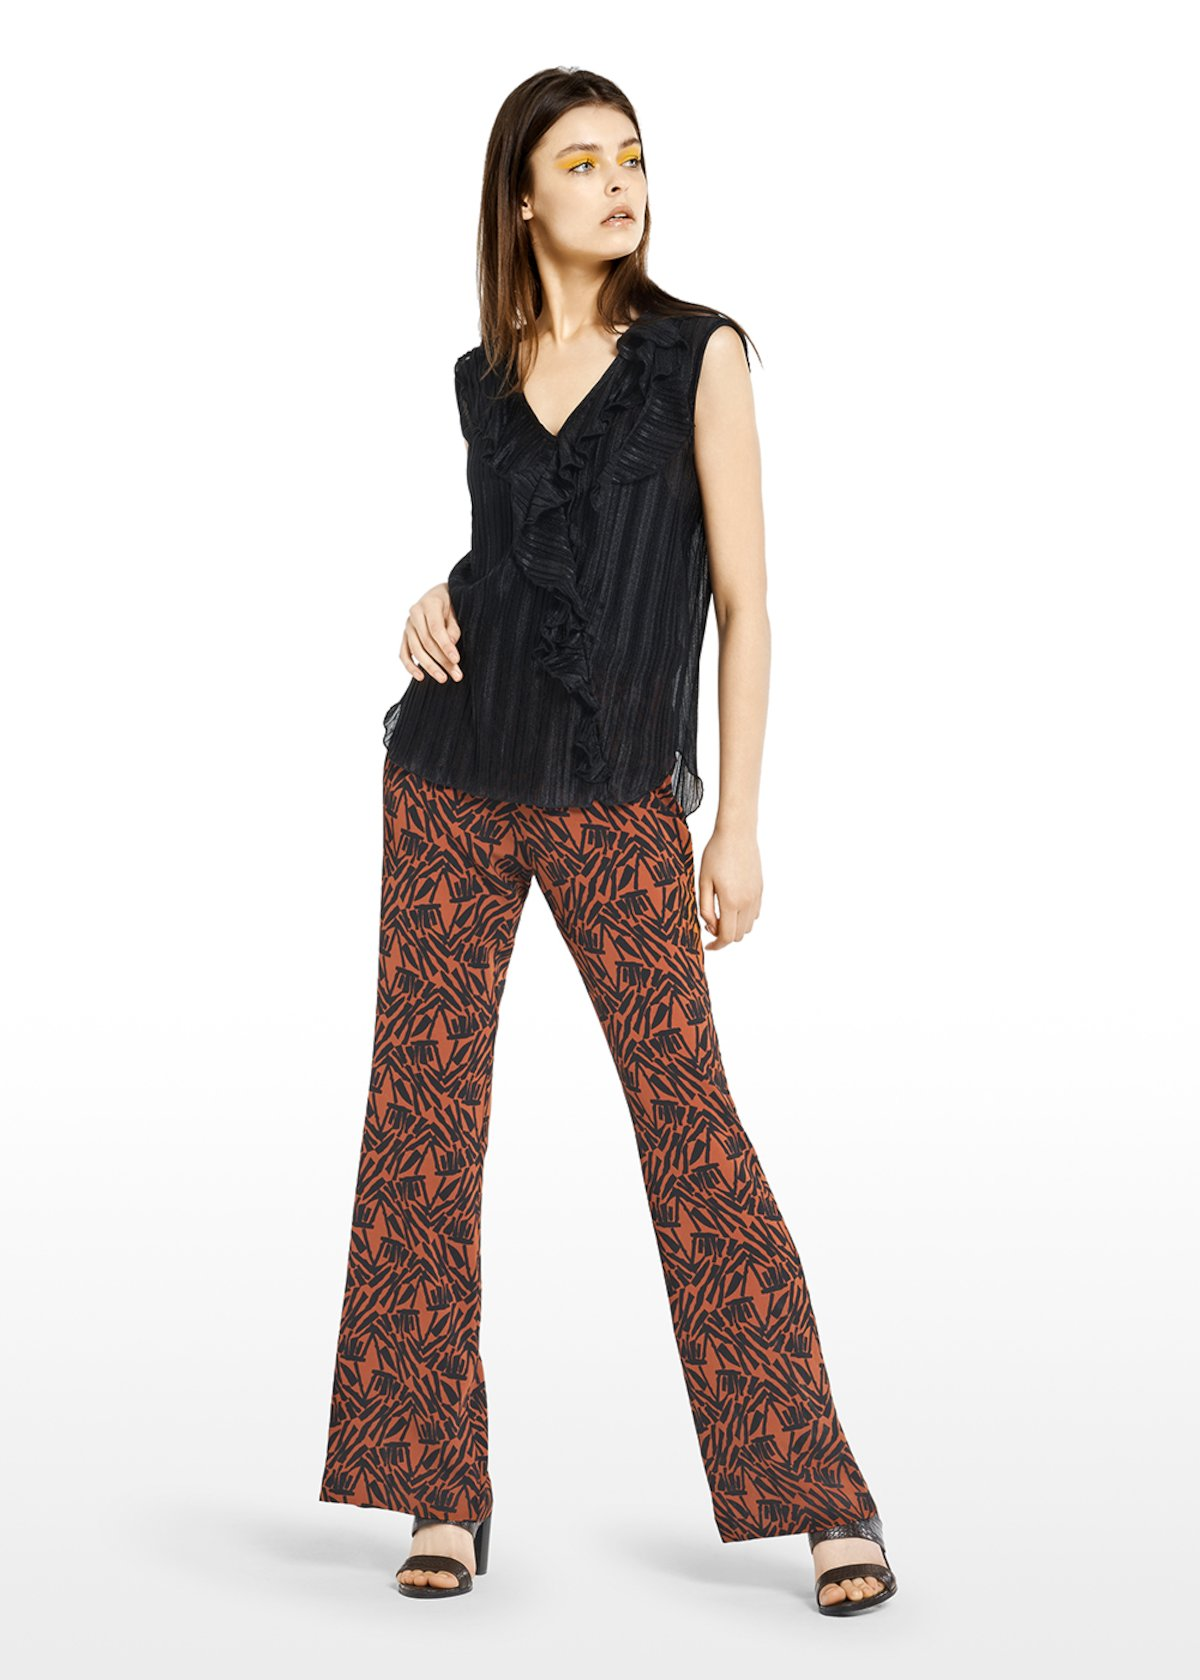 Two-piece Thea suit with pleated top and ethno fantasy pants - Carota / Black  Fantasia - Woman - Category image